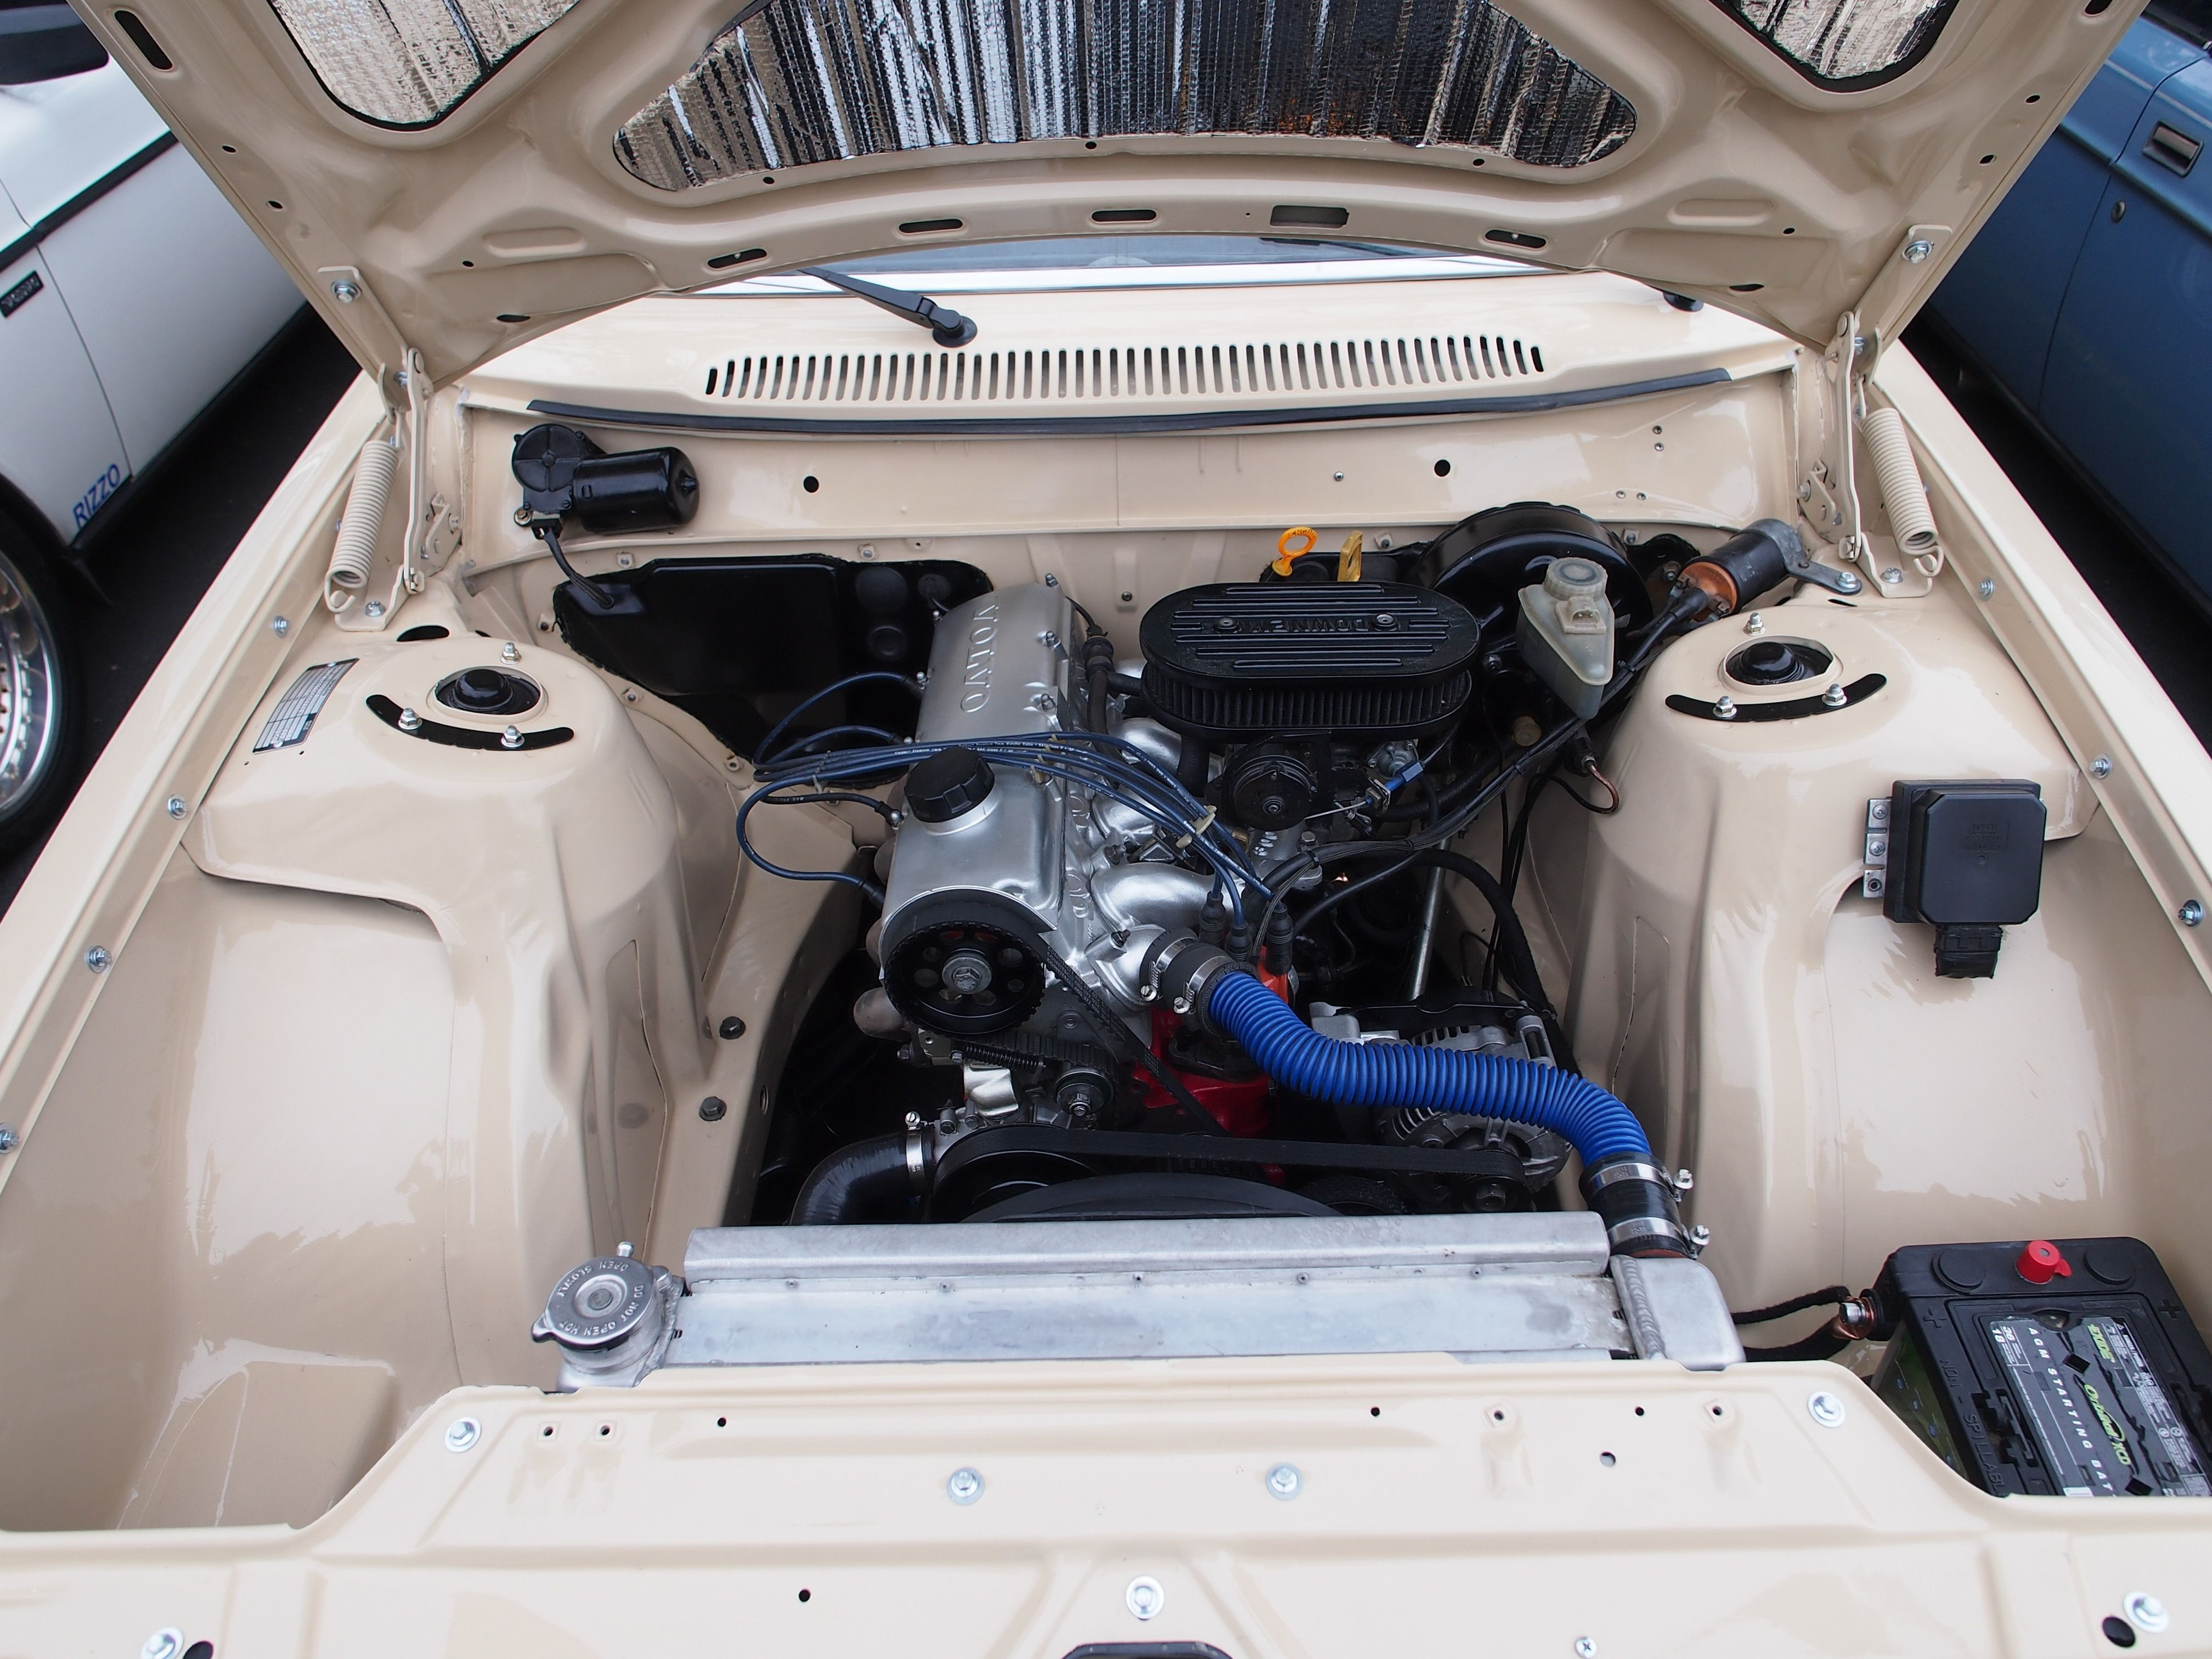 1ec7b7a792910100d16fb69c0e08aa44 119 best volvo engines images on pinterest engine, volvo and car show car engineering waterloo ny at reclaimingppi.co